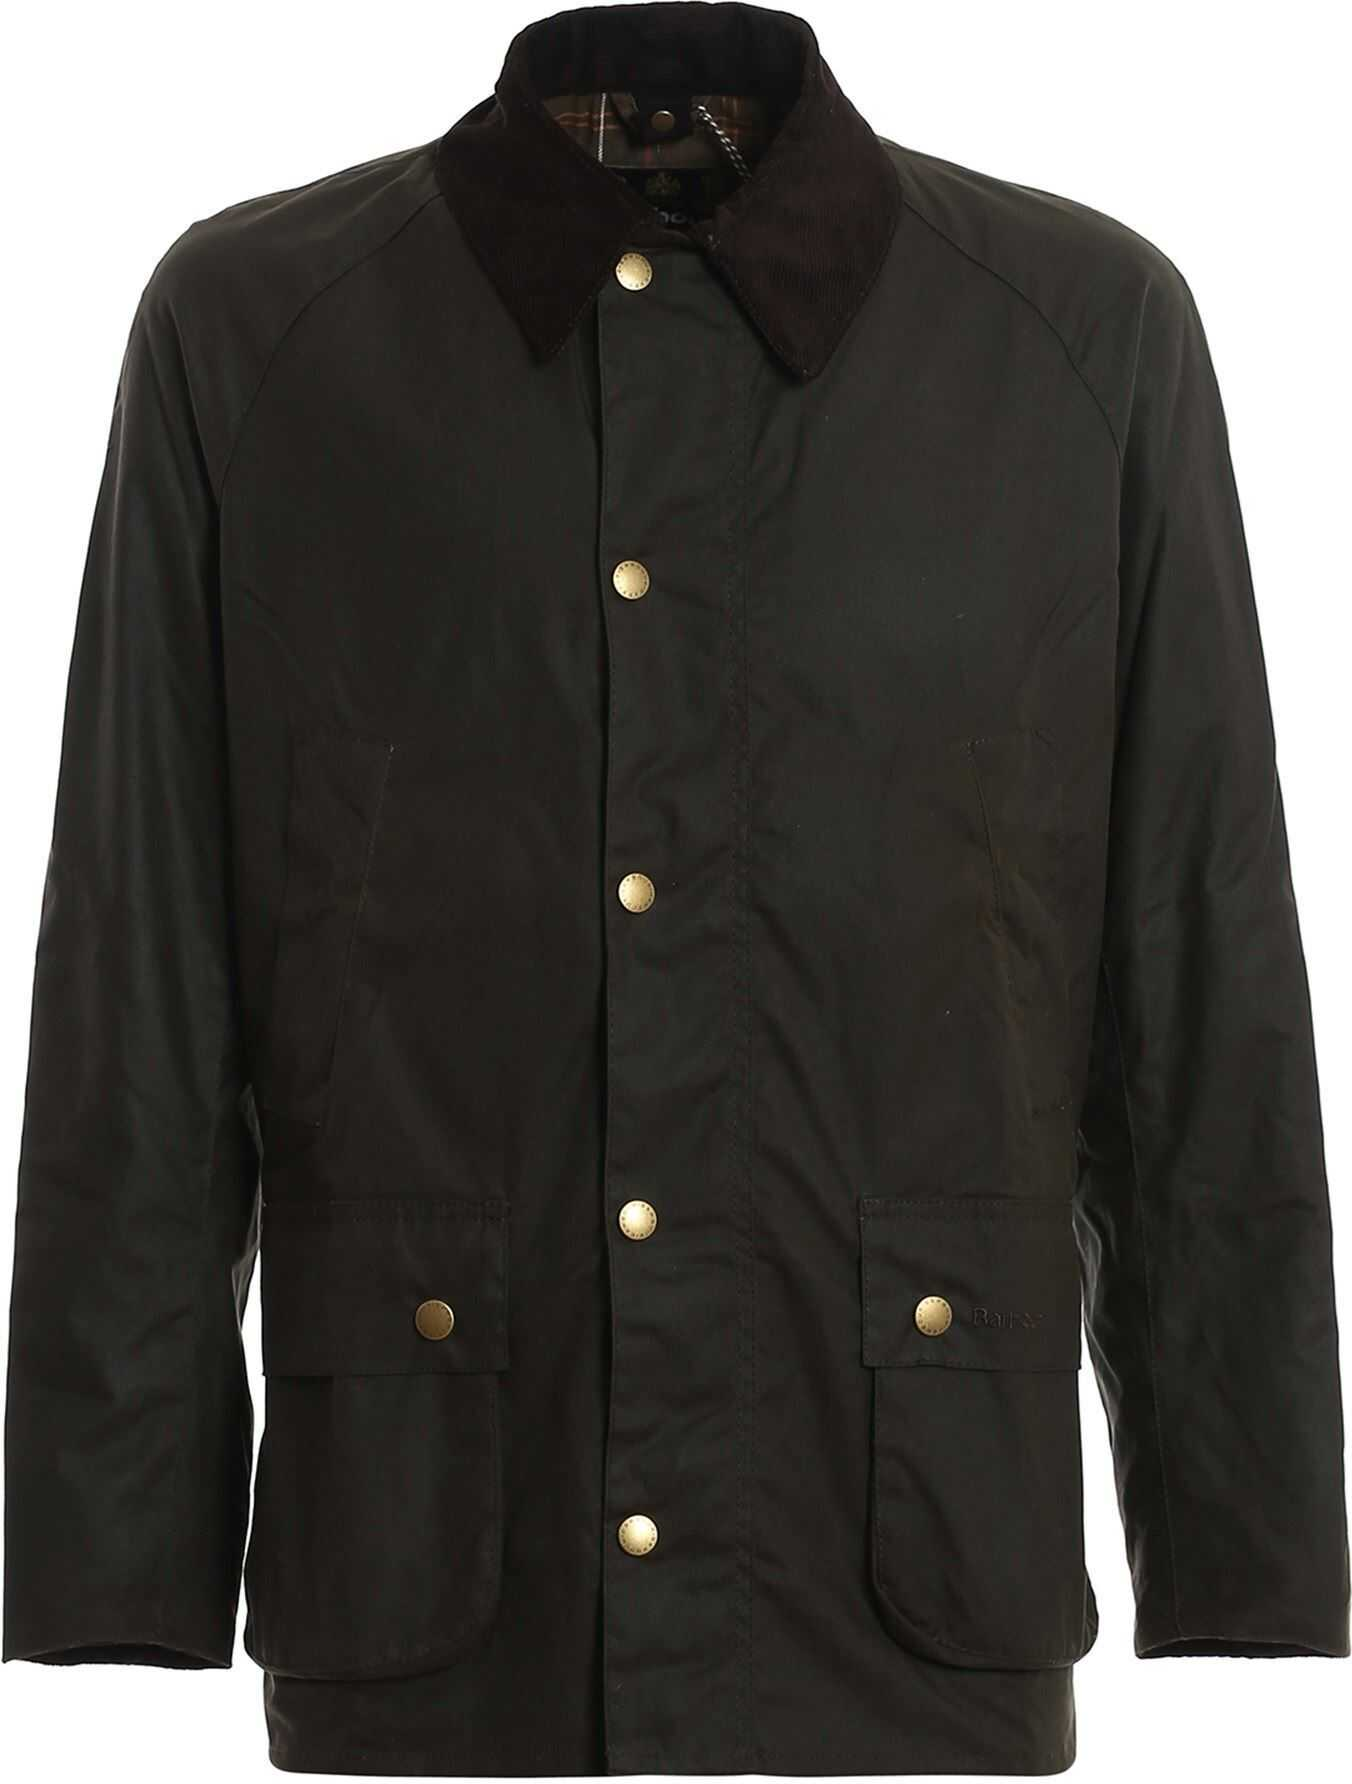 Barbour Ashby Jacket In Green Green imagine